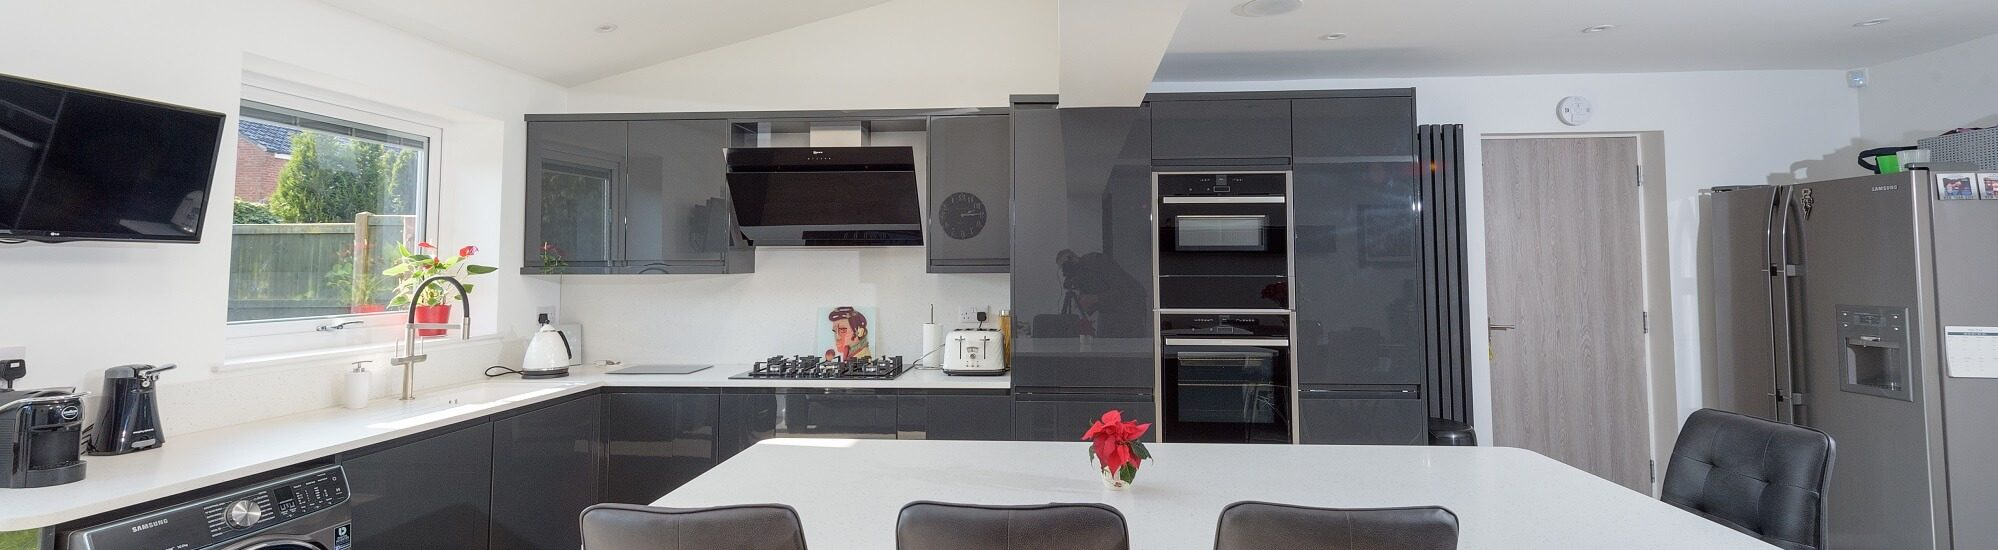 Rotpunkt gloss kitchen in white a grey colour scheme with built in induction hob and oven.